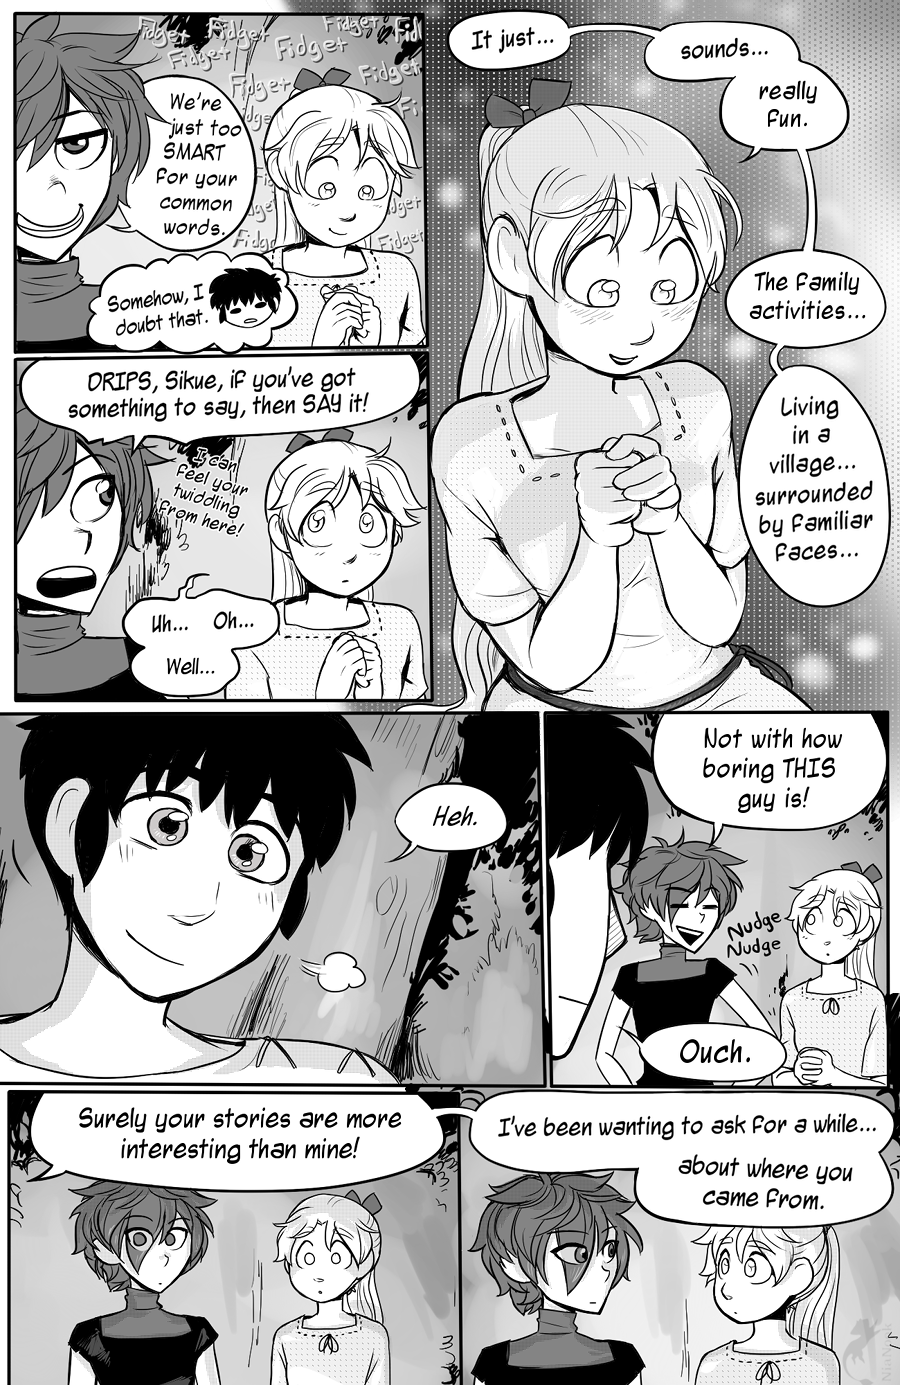 Page 32 (Book 3)